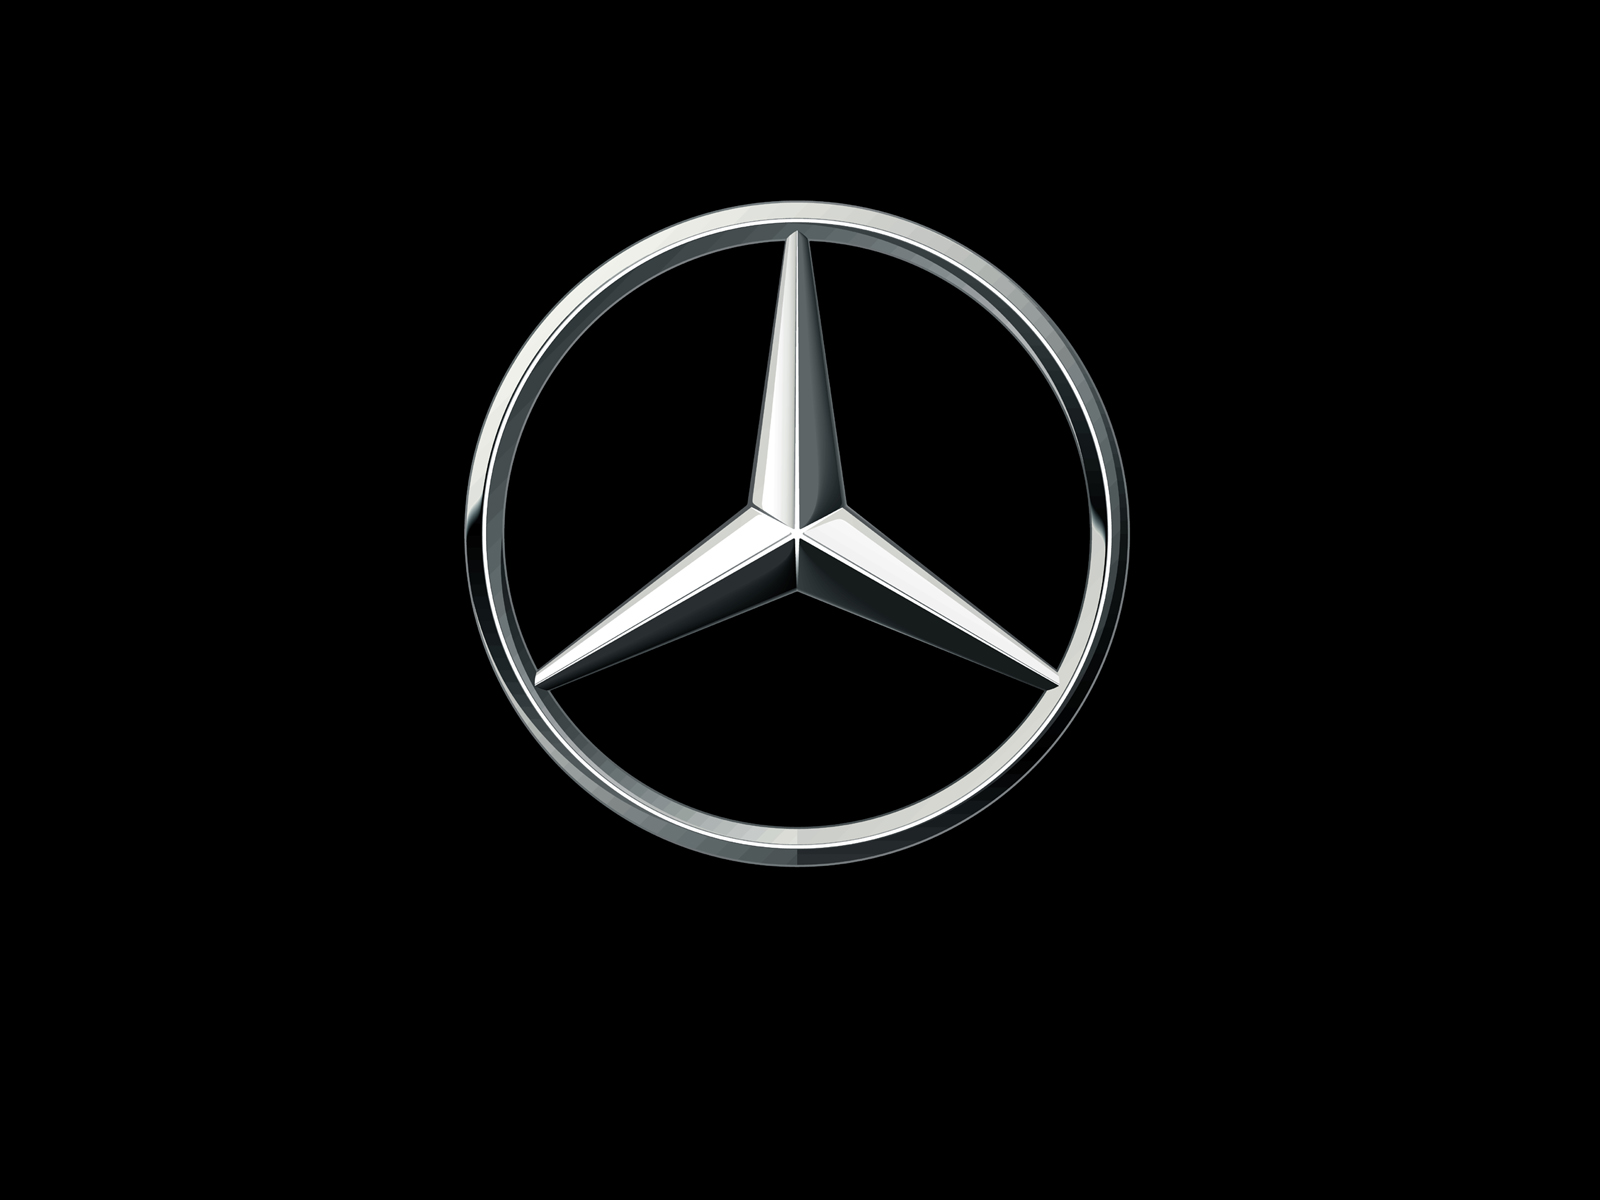 Below Are The 2016 July Lease Rates For Mercedes Benz ...